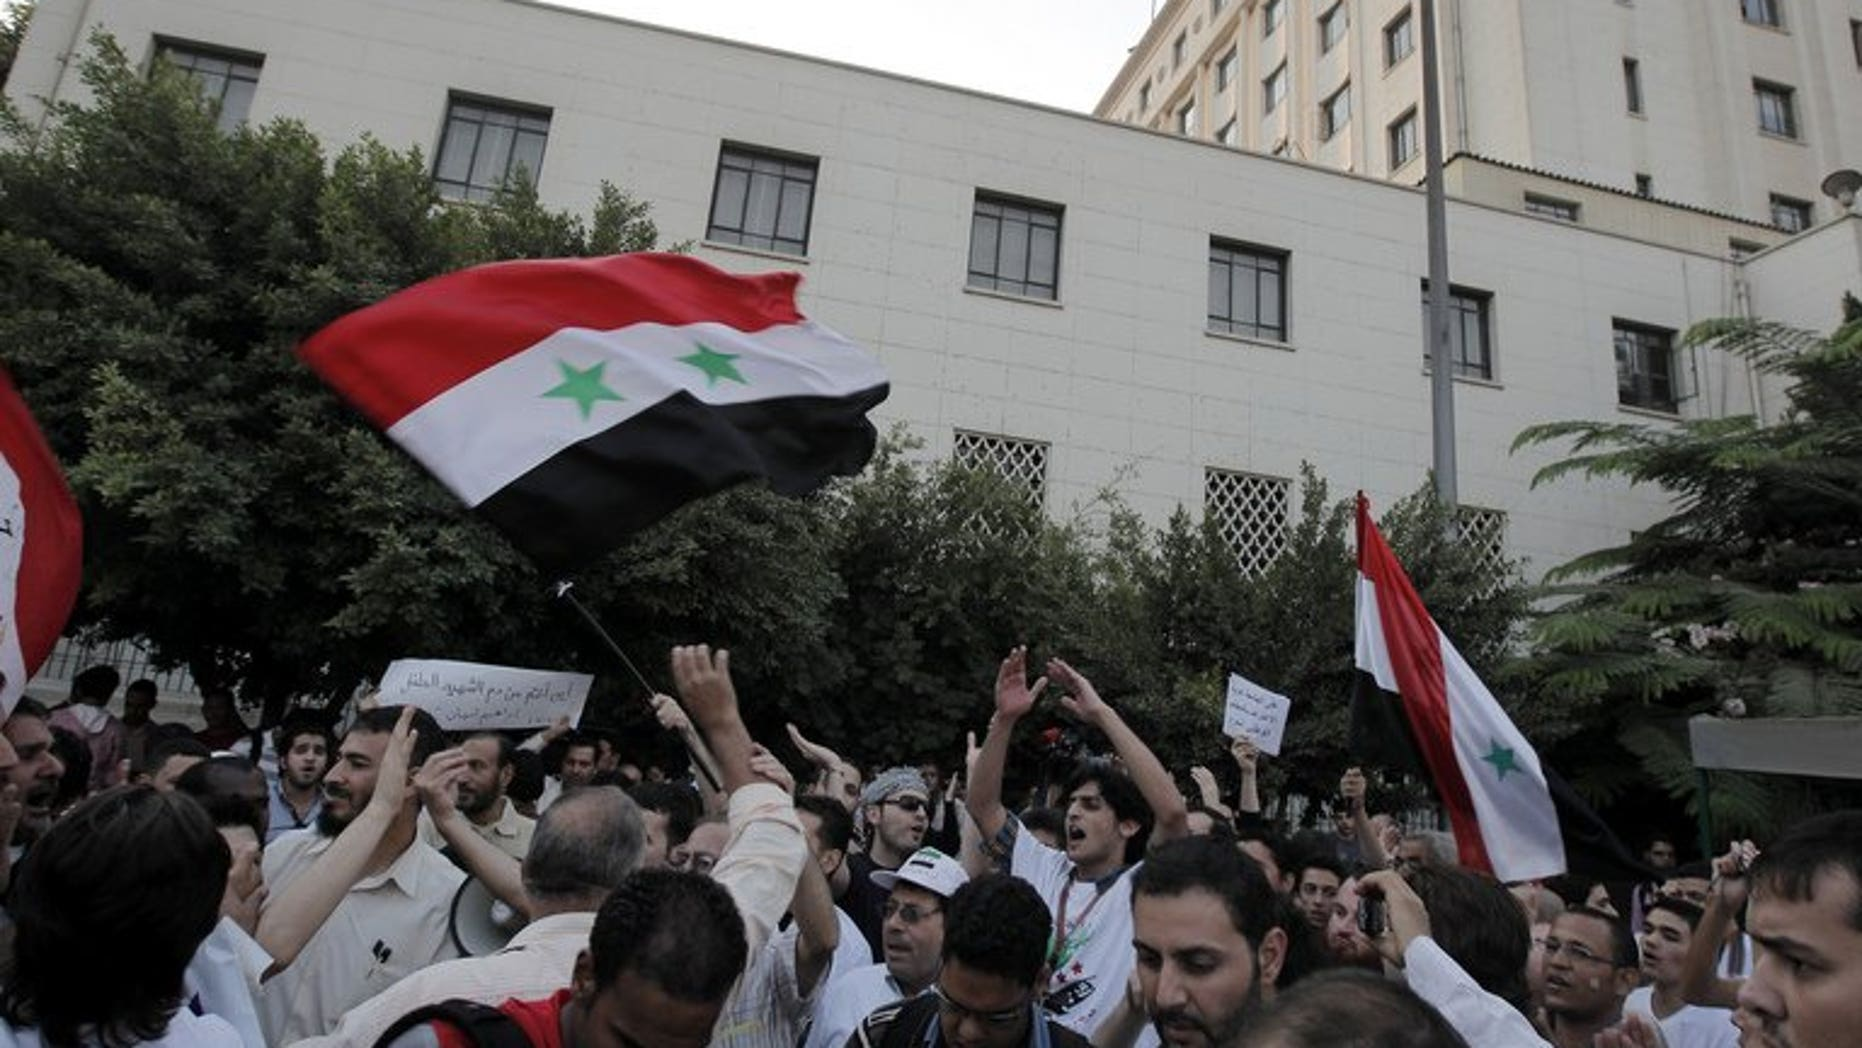 Syrians living in Egypt protest against President Bashar al-Assad in Cairo on October 16, 2011. Rising anti-Syrian rhetoric and arbitrary arrests are pushing a growing number of Syrian war exiles in Egypt to seek UN protection, the world body's refugee agency said Friday.